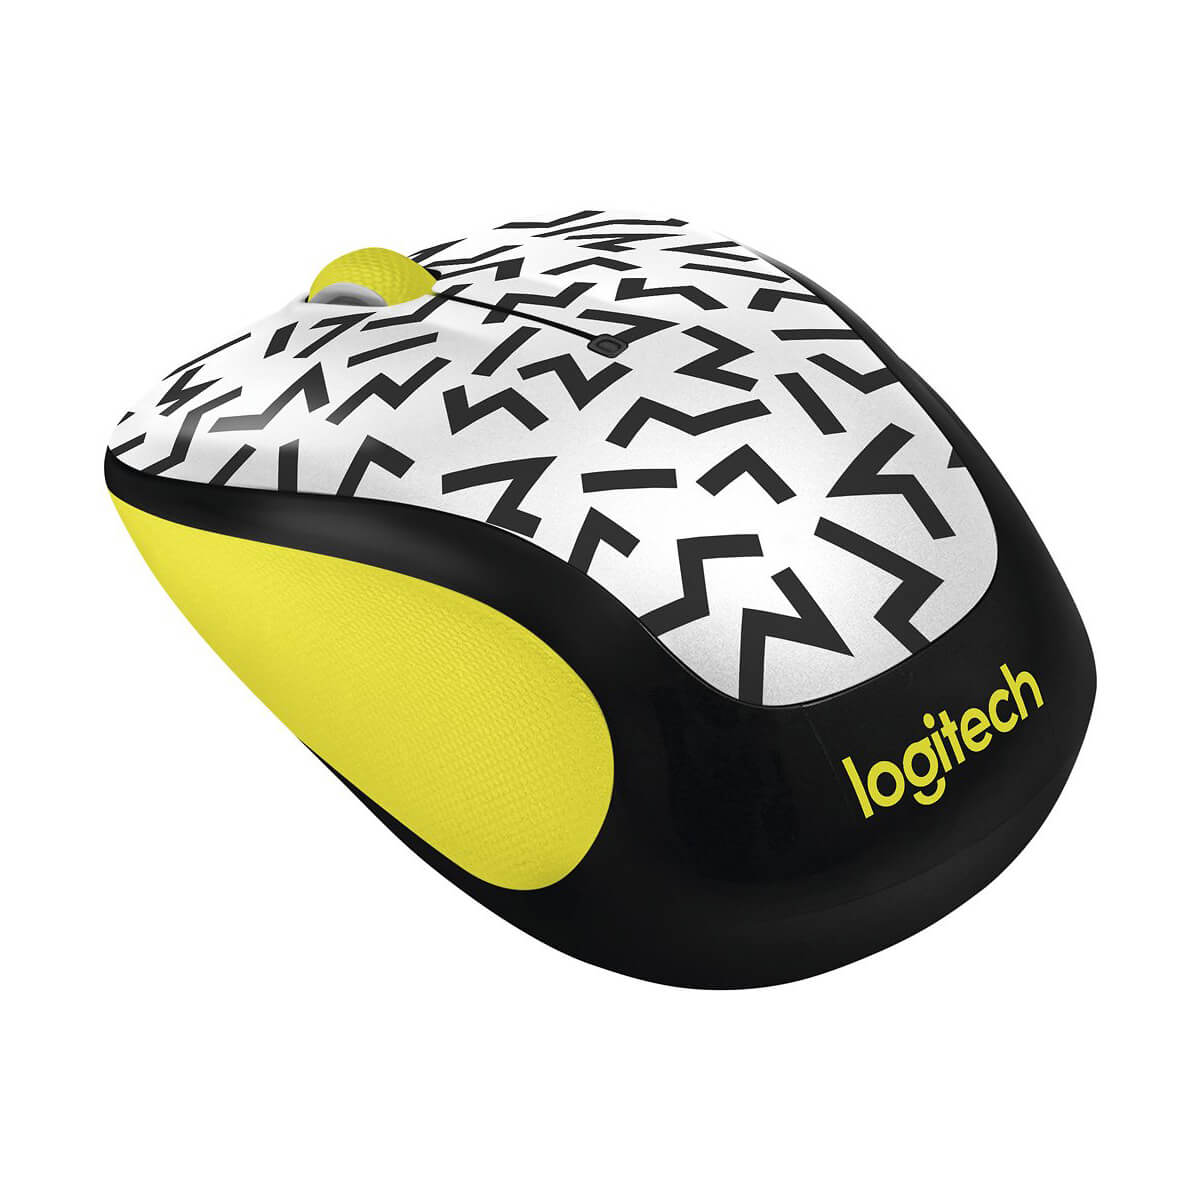 Logitech M325C Wireless Mouse - безжична мишка за PC и Mac